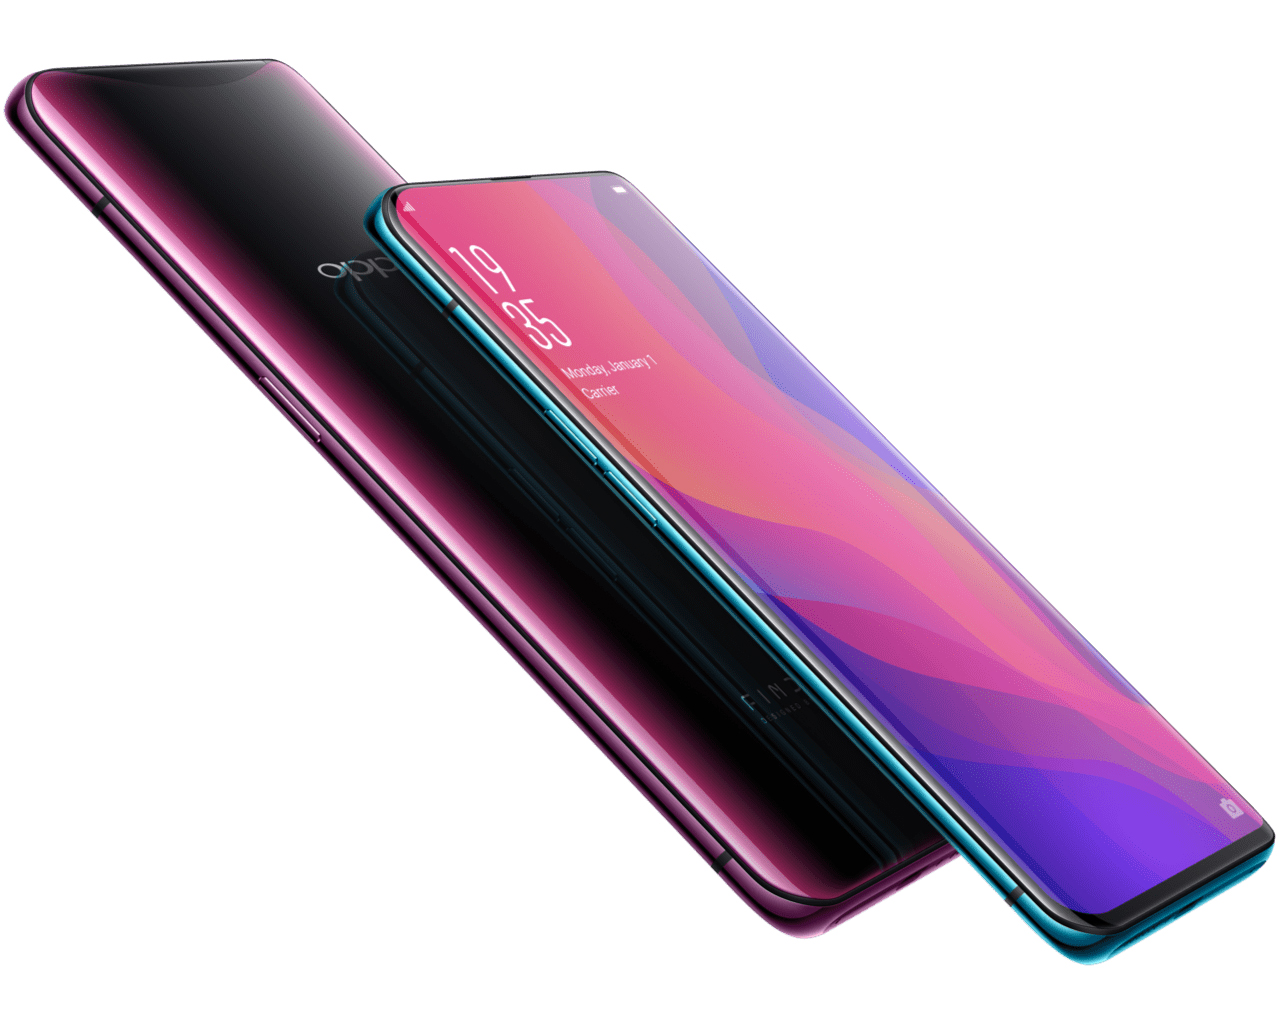 oppo find x - notebookcheck externe tests